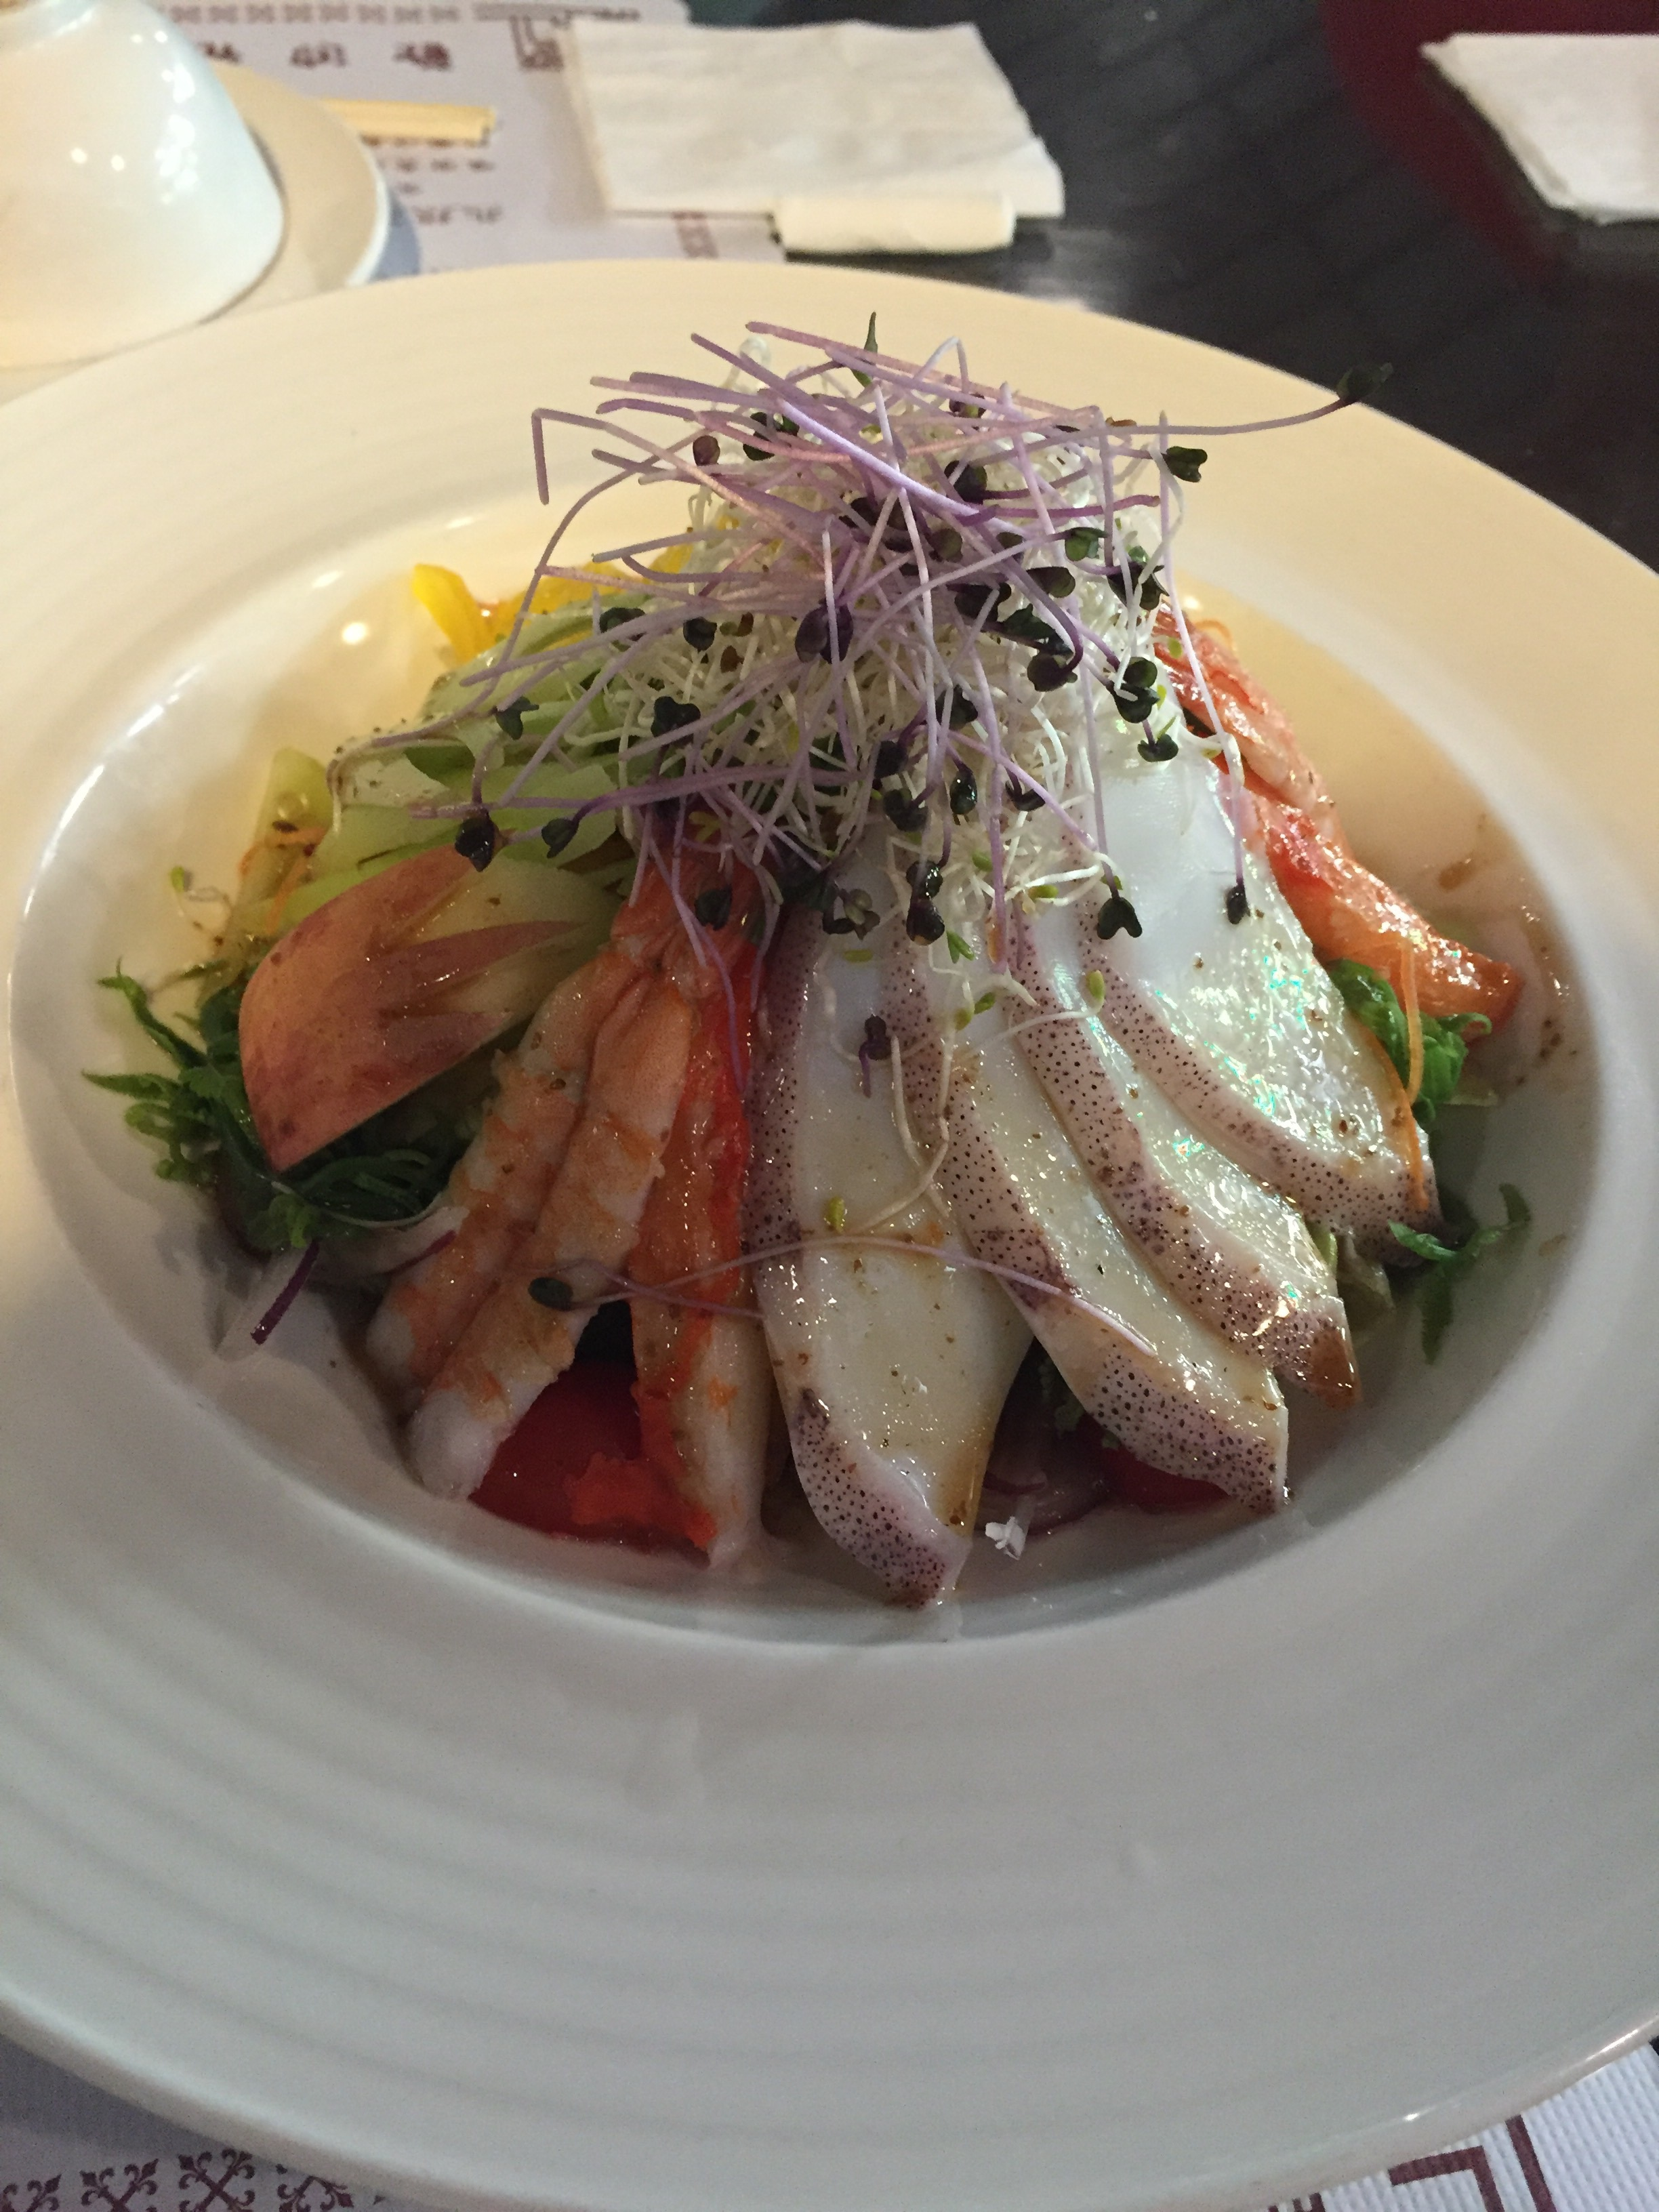 Seafood salad with Japanese-styled dressing